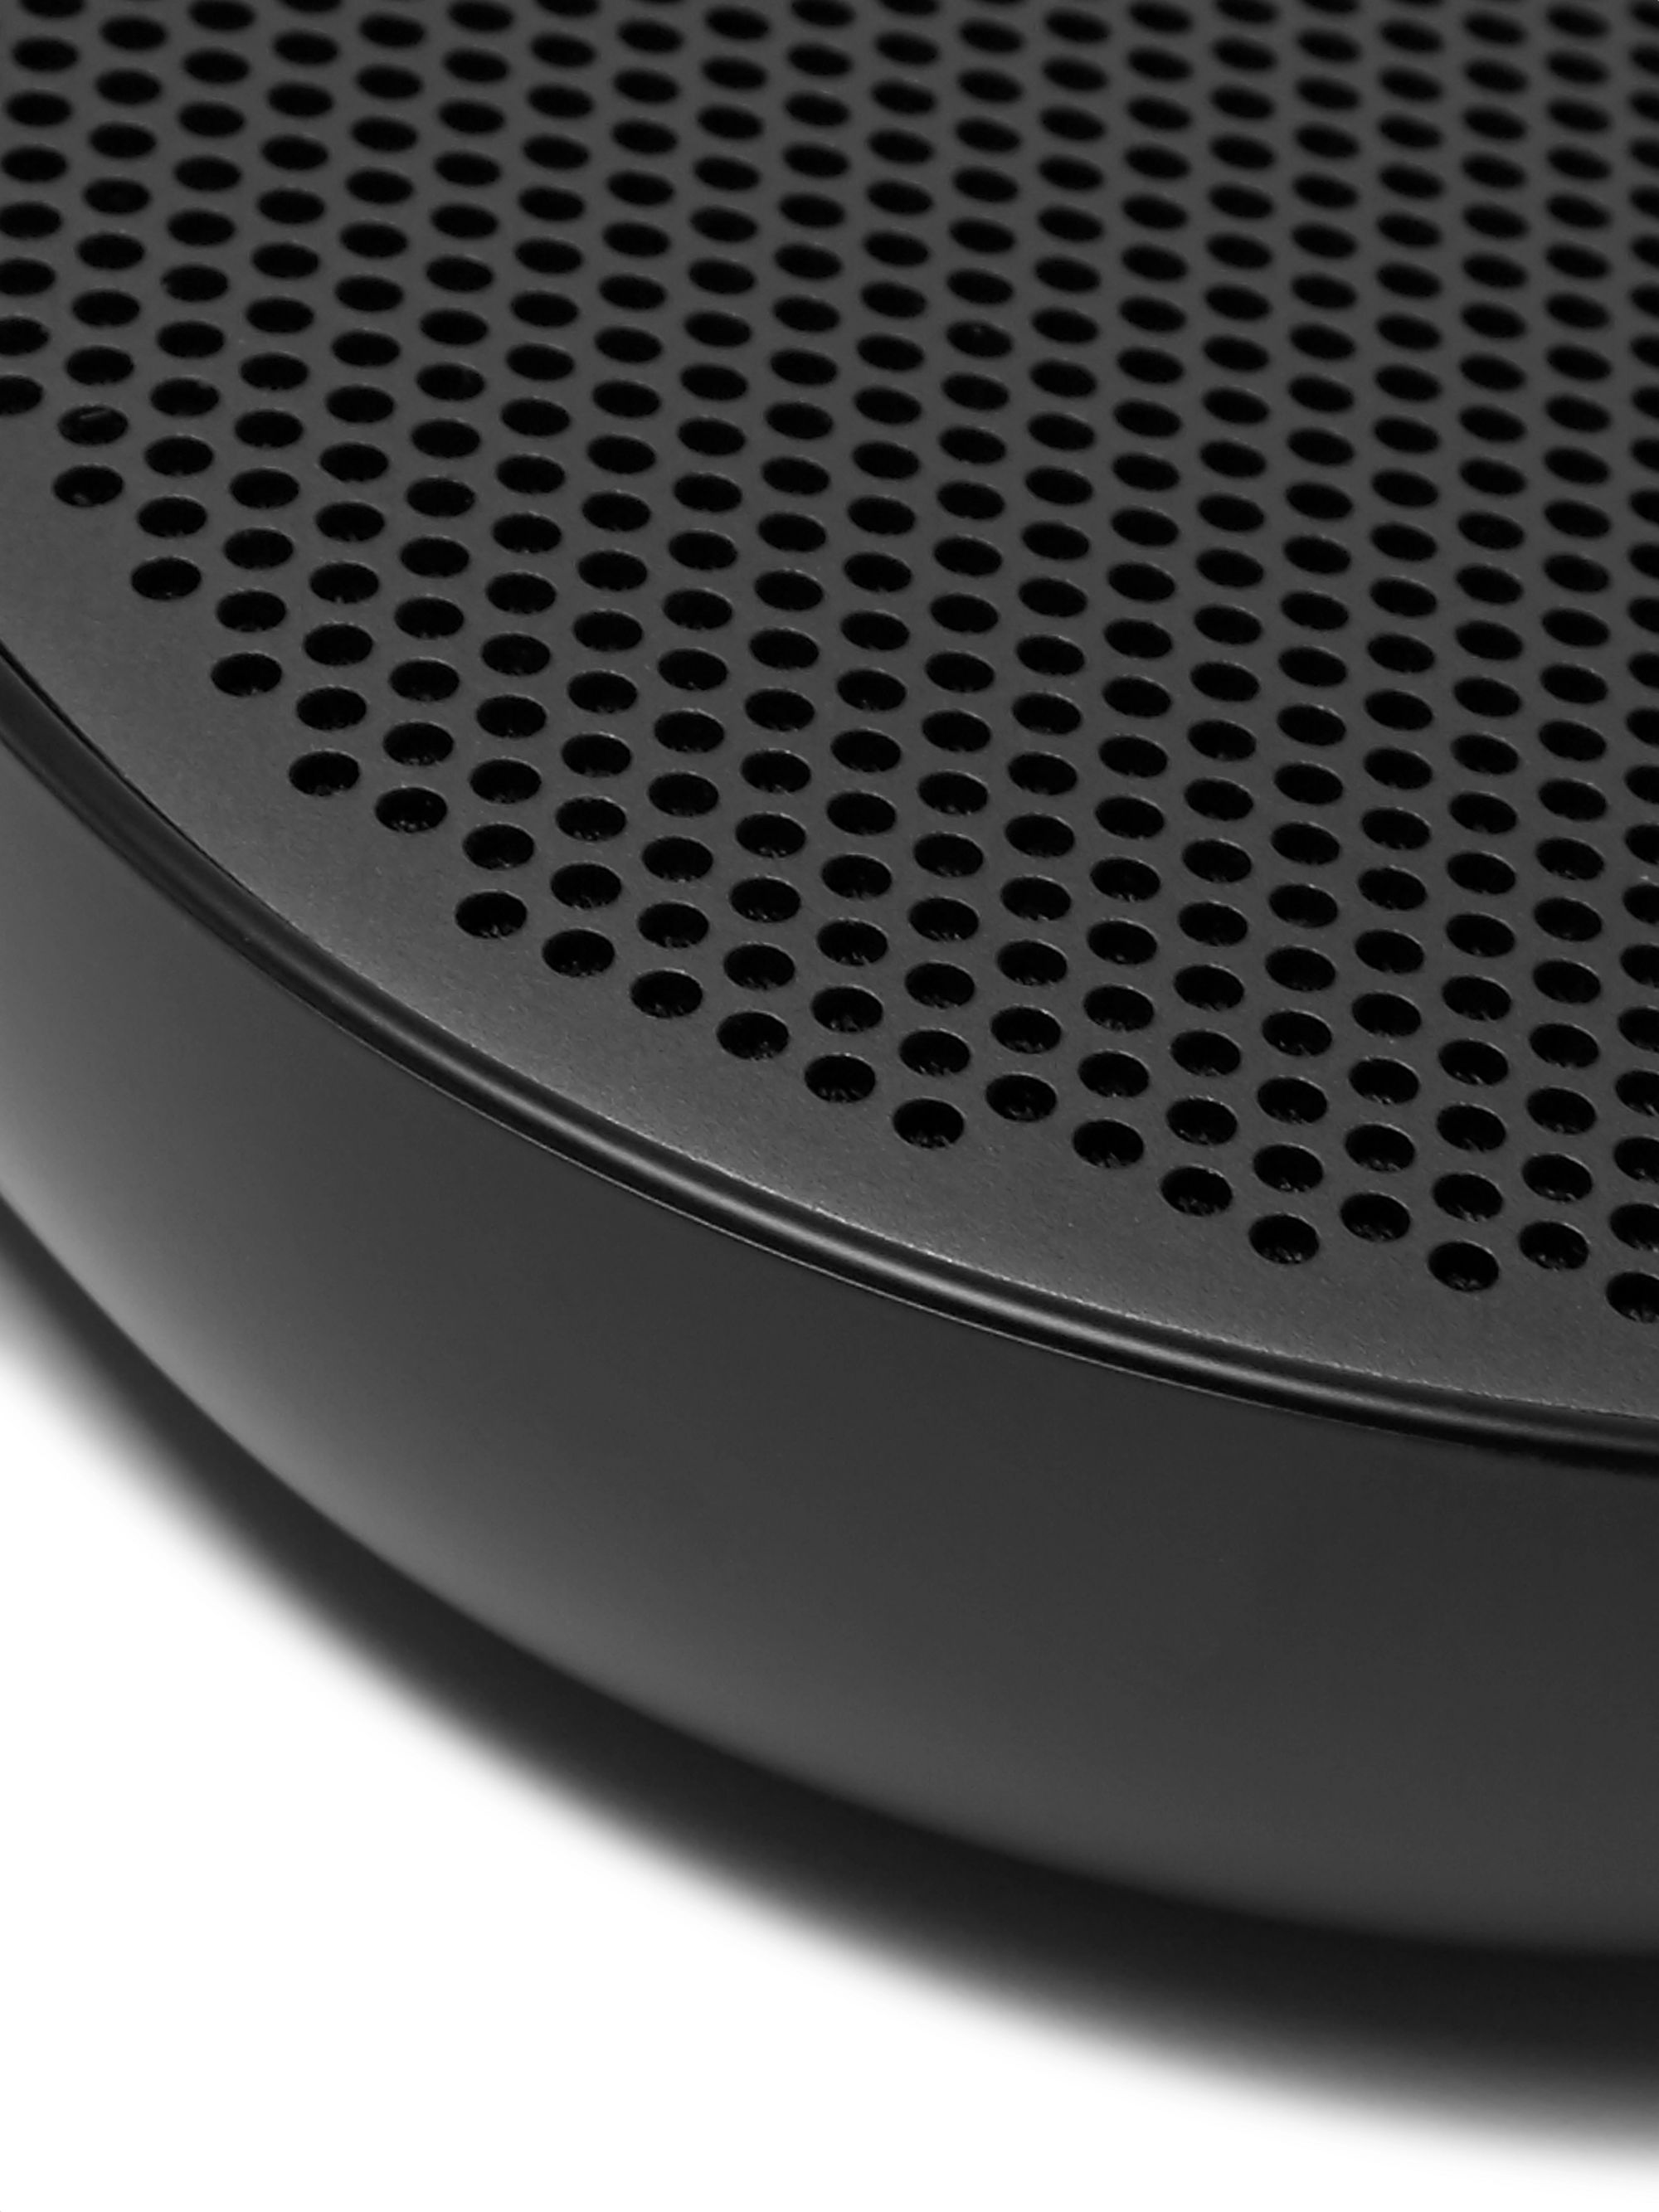 Bang & Olufsen BeoPlay P2 Portable Bluetooth Speaker